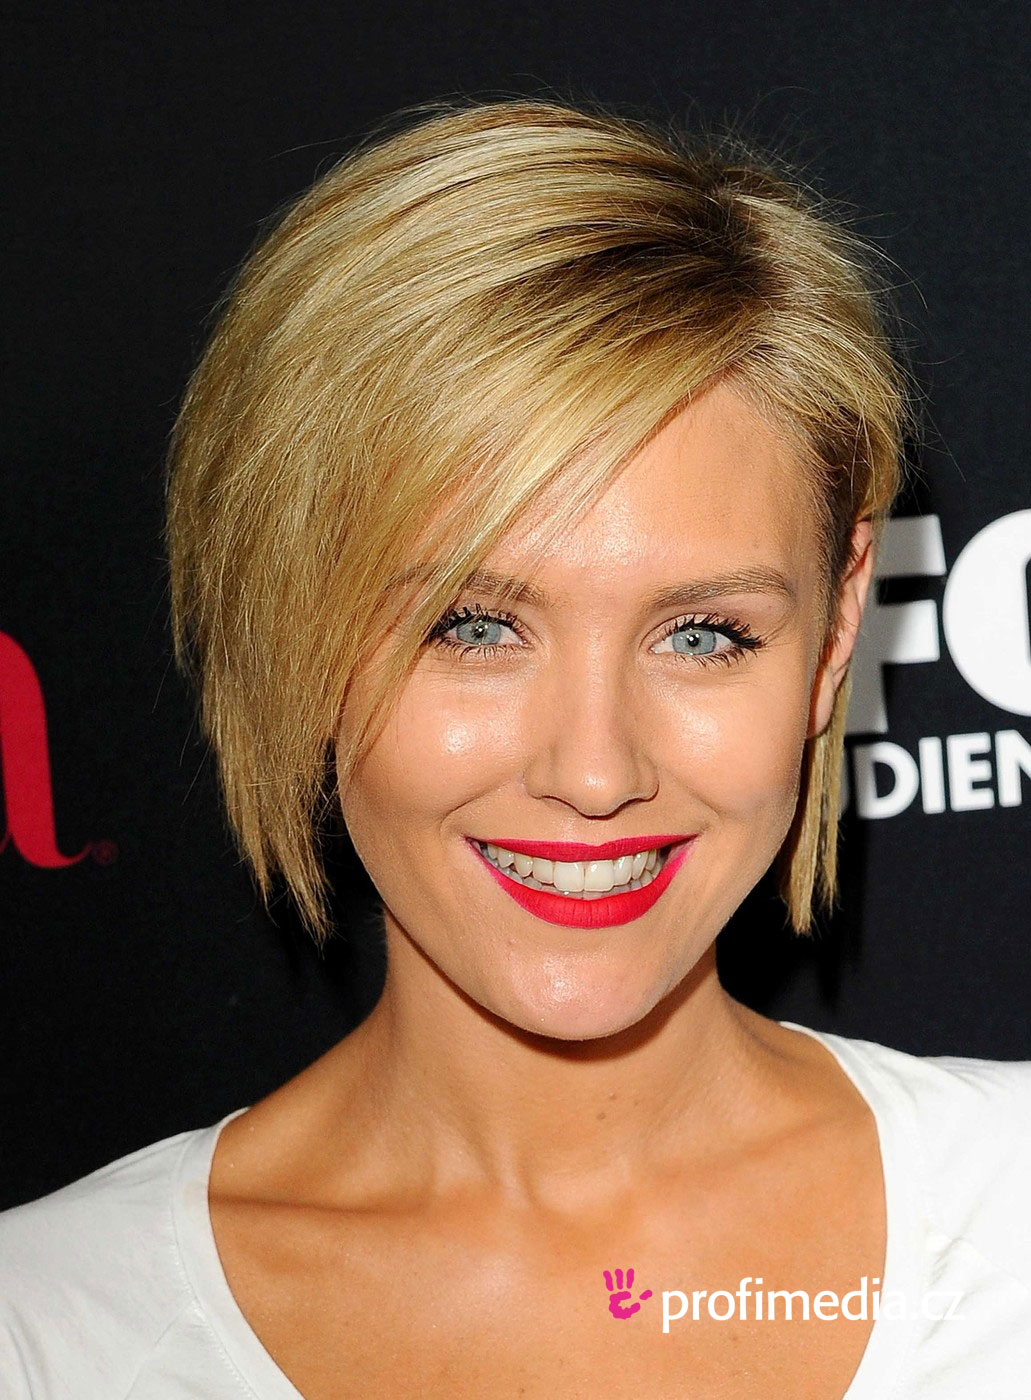 nicky whelan bellazonnicky whelan ballet, nicky whelan bellazon, nicky whelan the wedding ringer, nicky whelan film, nicky whelan википедия, nicky whelan (i), nicky whelan husband, nicky whelan instagram, nicky whelan twitter, nicky whelan 2015, nicky whelan boyfriend, nicky whelan freeones, nicky whelan height